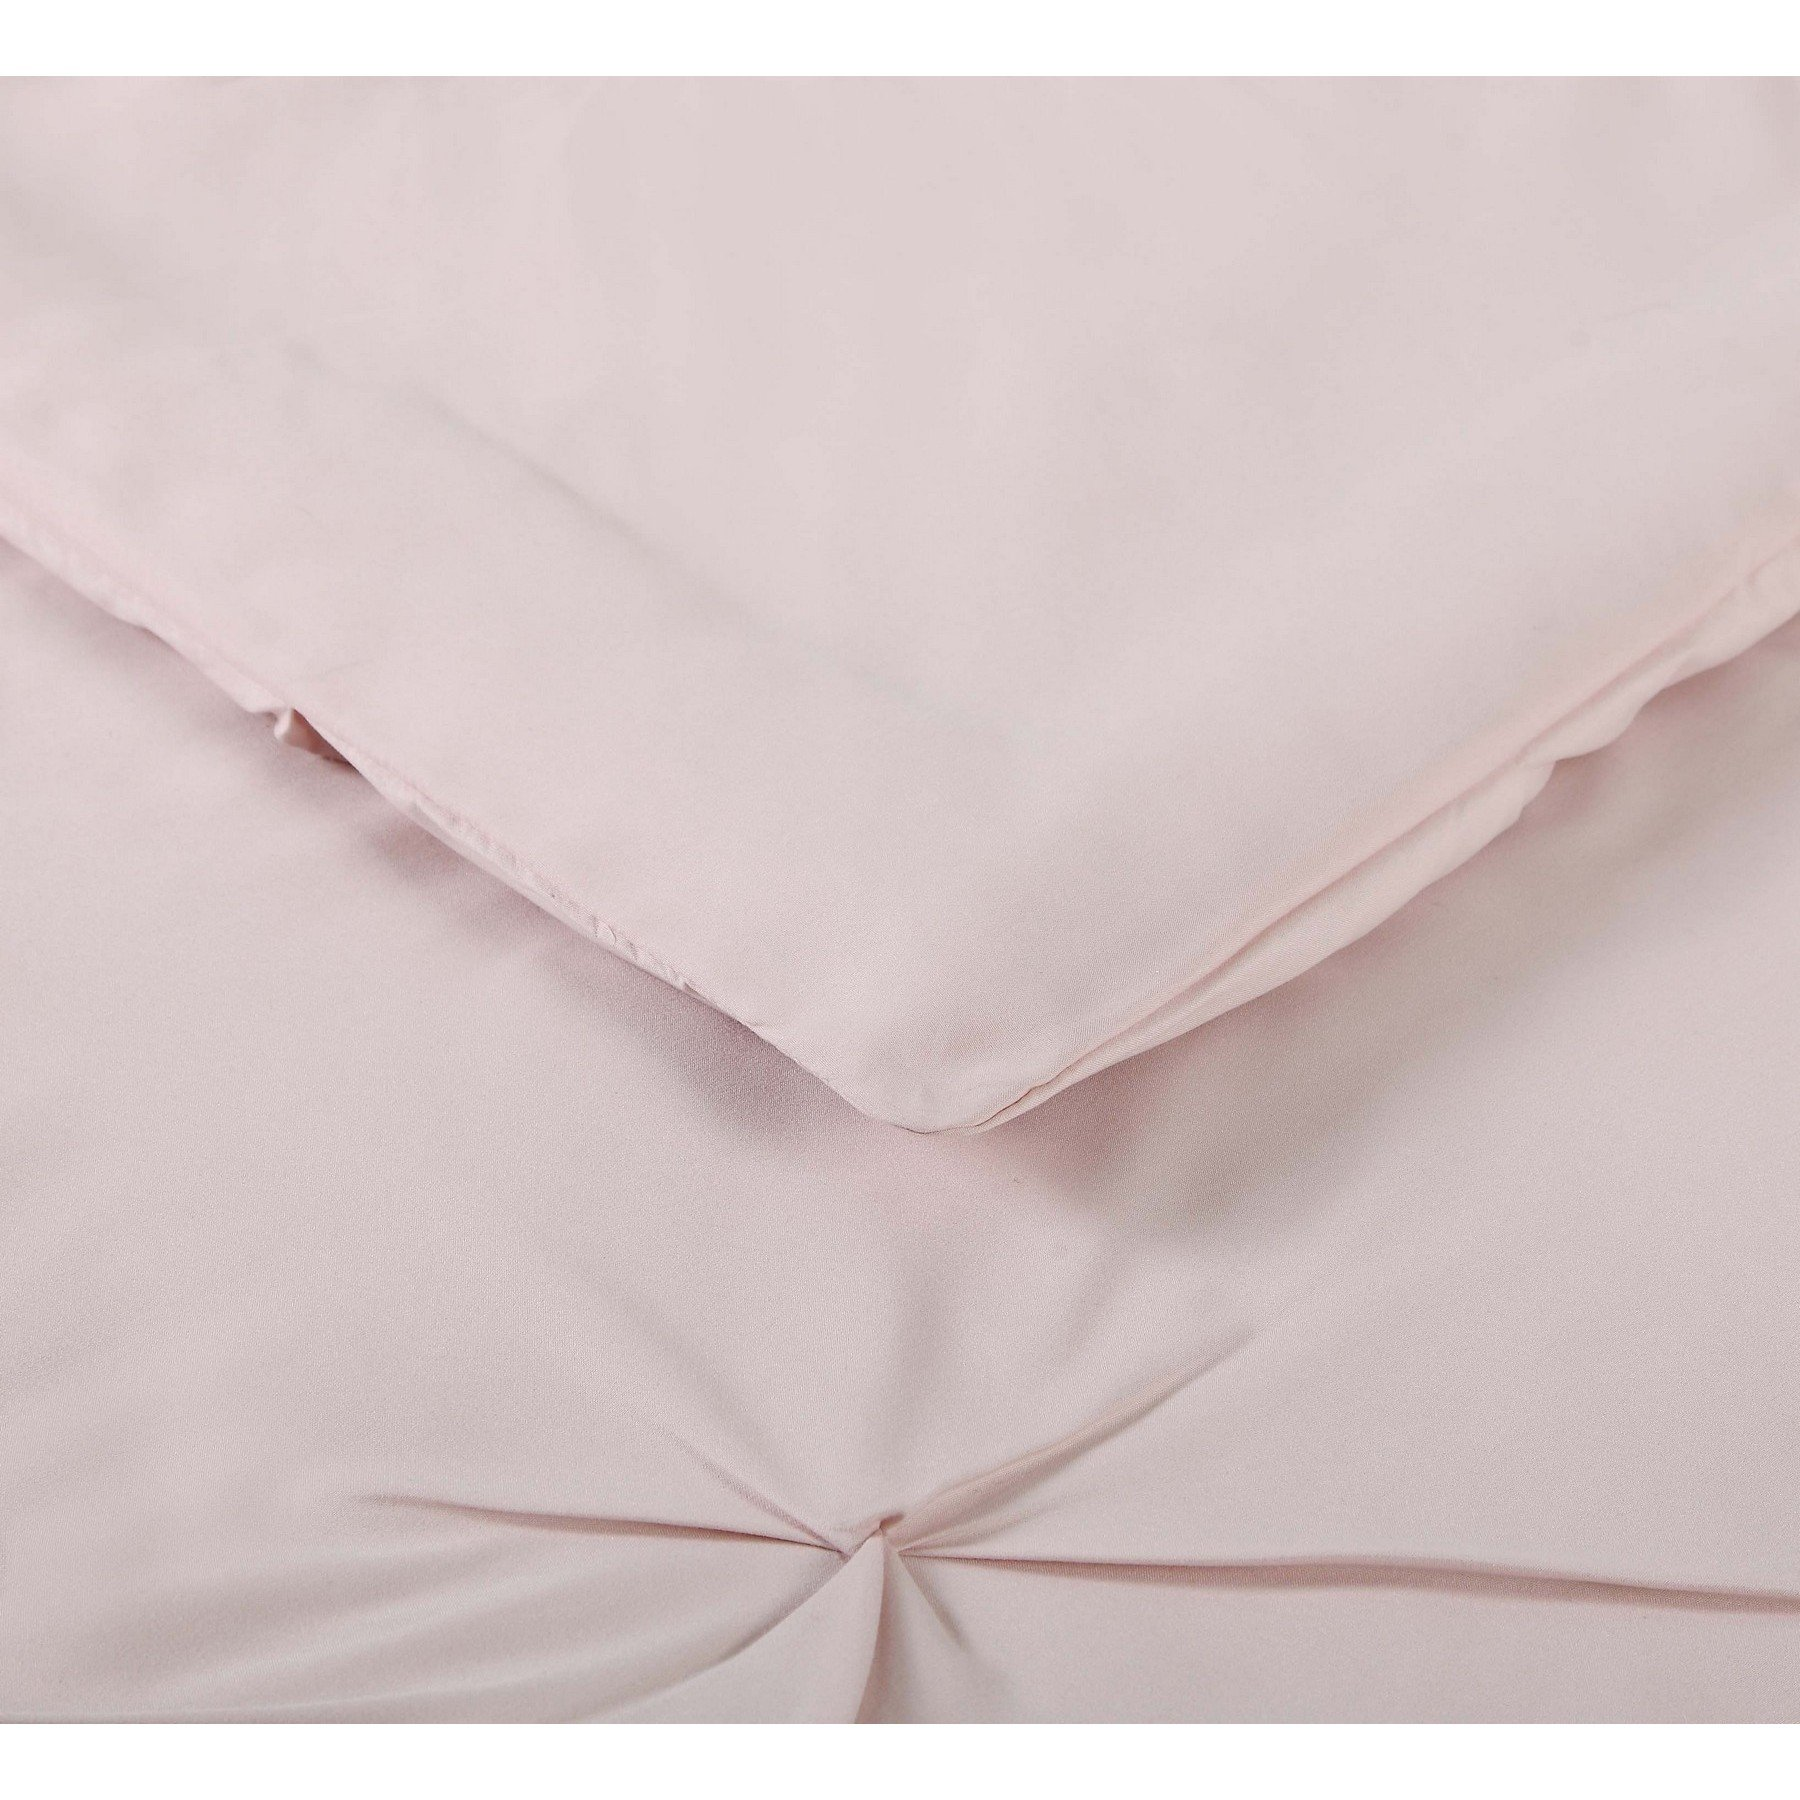 Truly Soft Everyday BIB1969BSQSC-32 Pleated Bed in a Bag, Queen, Crosses Blush by Truly Soft Everyday (Image #2)